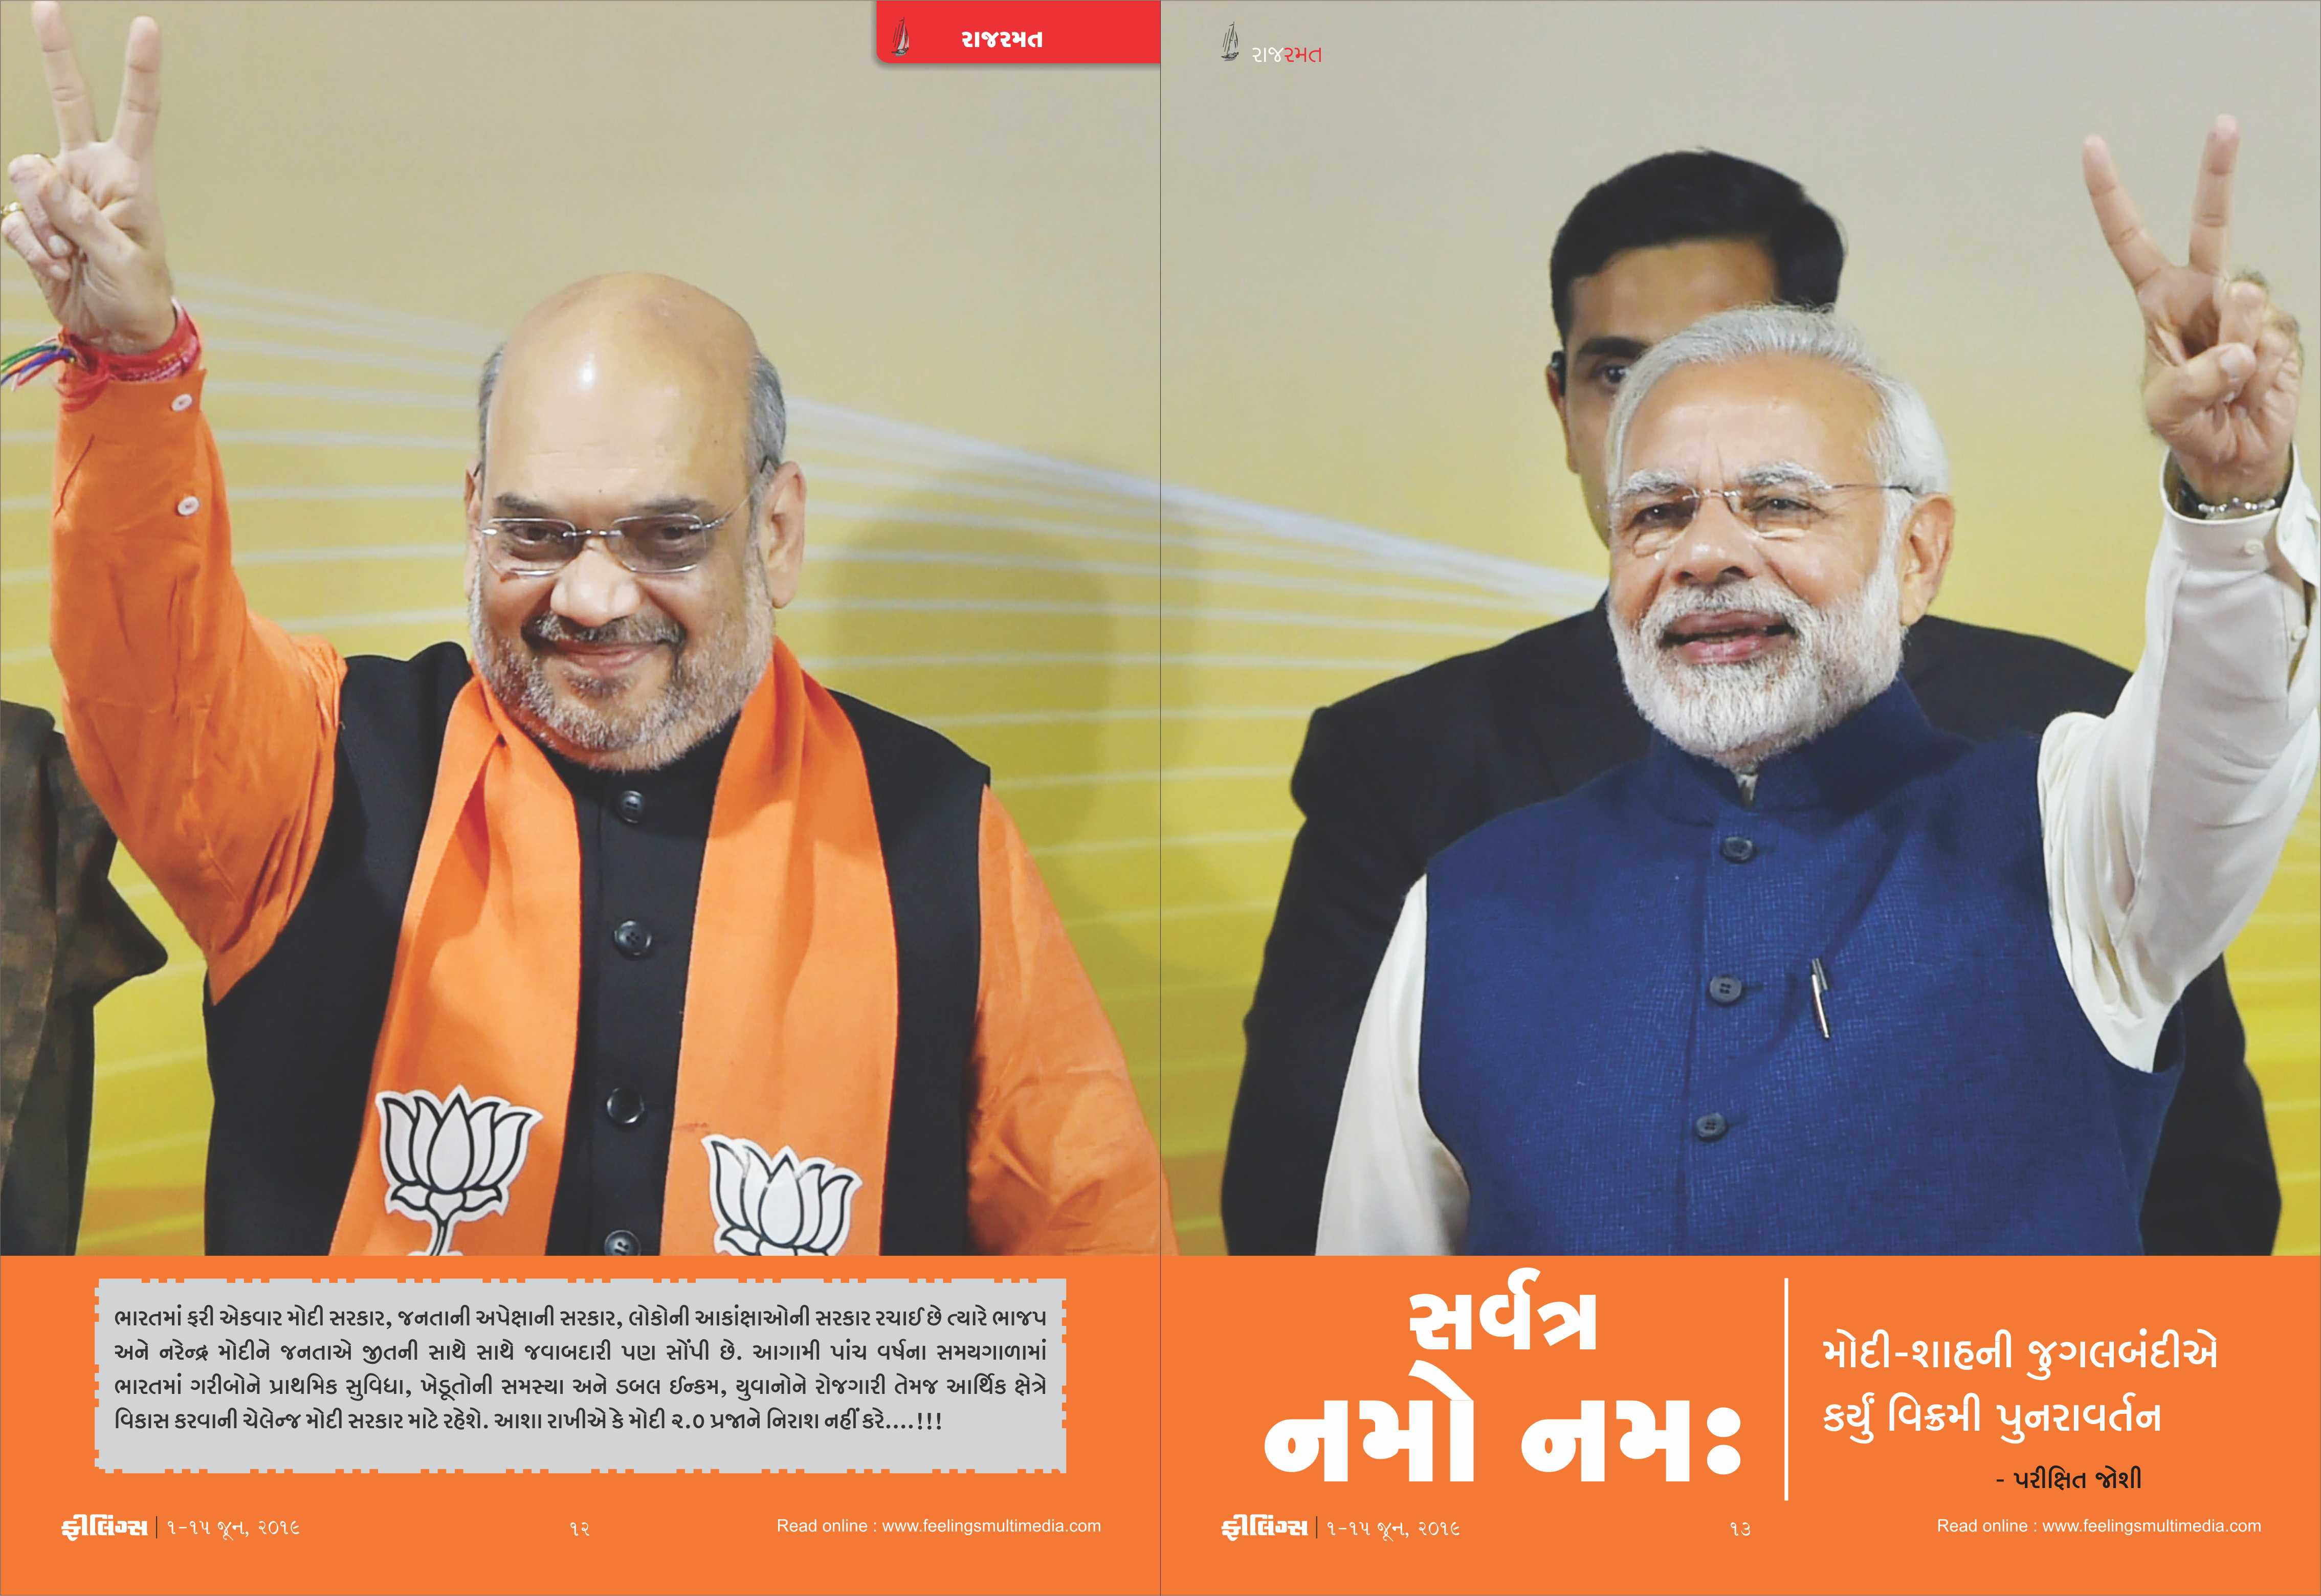 Gujarati Magazine, online Gujarati magazine, Gujarati news, News in